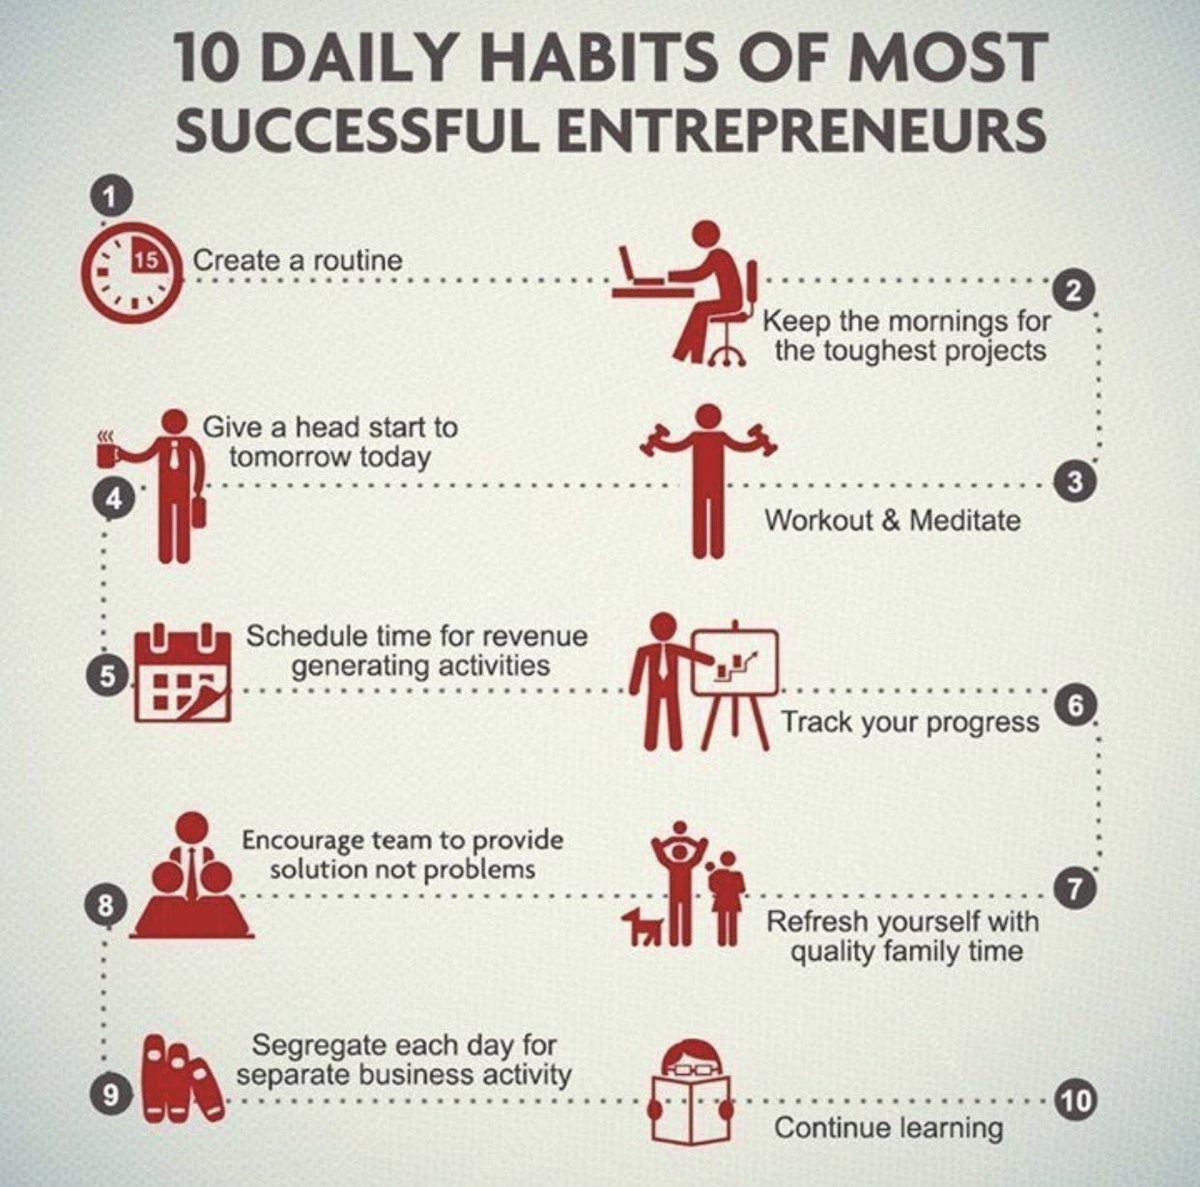 Successful habits of a #entrepreneur. #disruption #bigdata #banking #fintech #IoT #innovation #startup #tech #SmartCity #blockchain #Ai <br>http://pic.twitter.com/CSlXH9XUUj